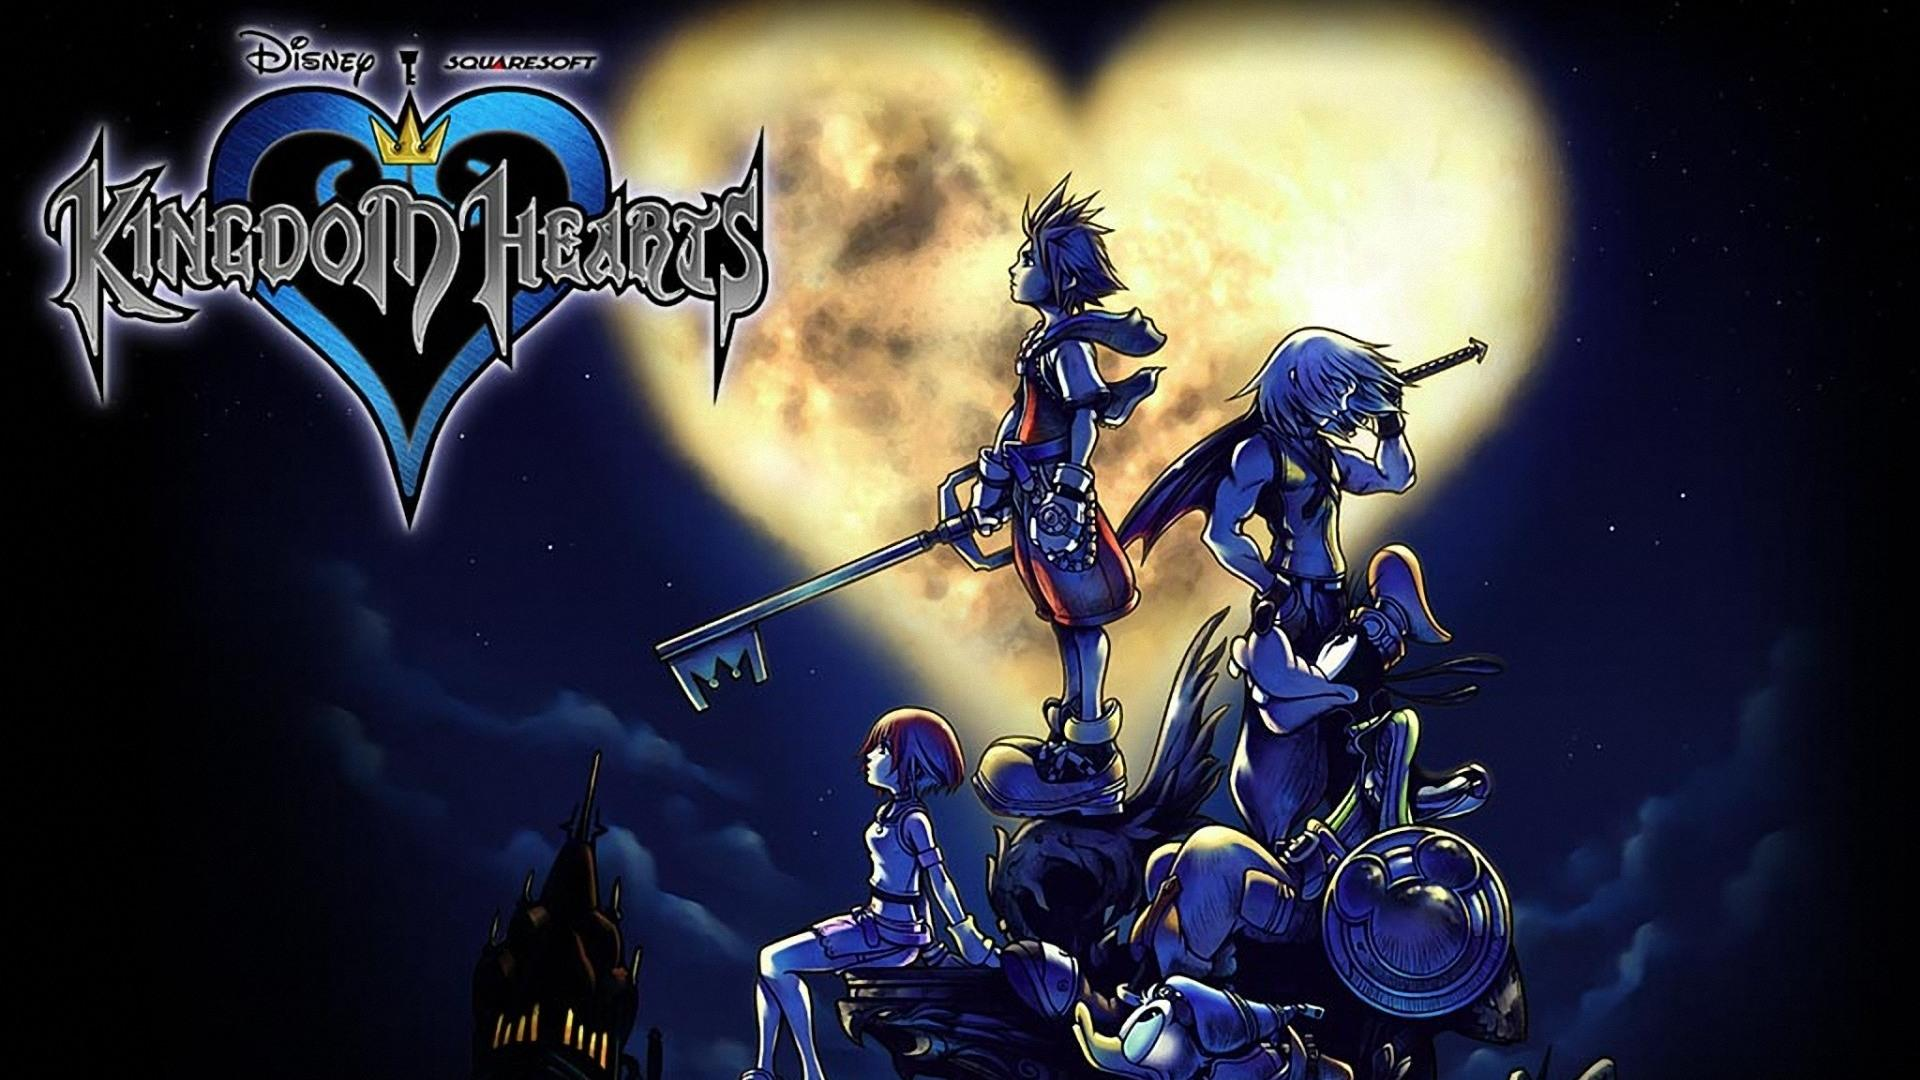 Grab this Kingdom Hearts all-in-one deal for $20 - CNET